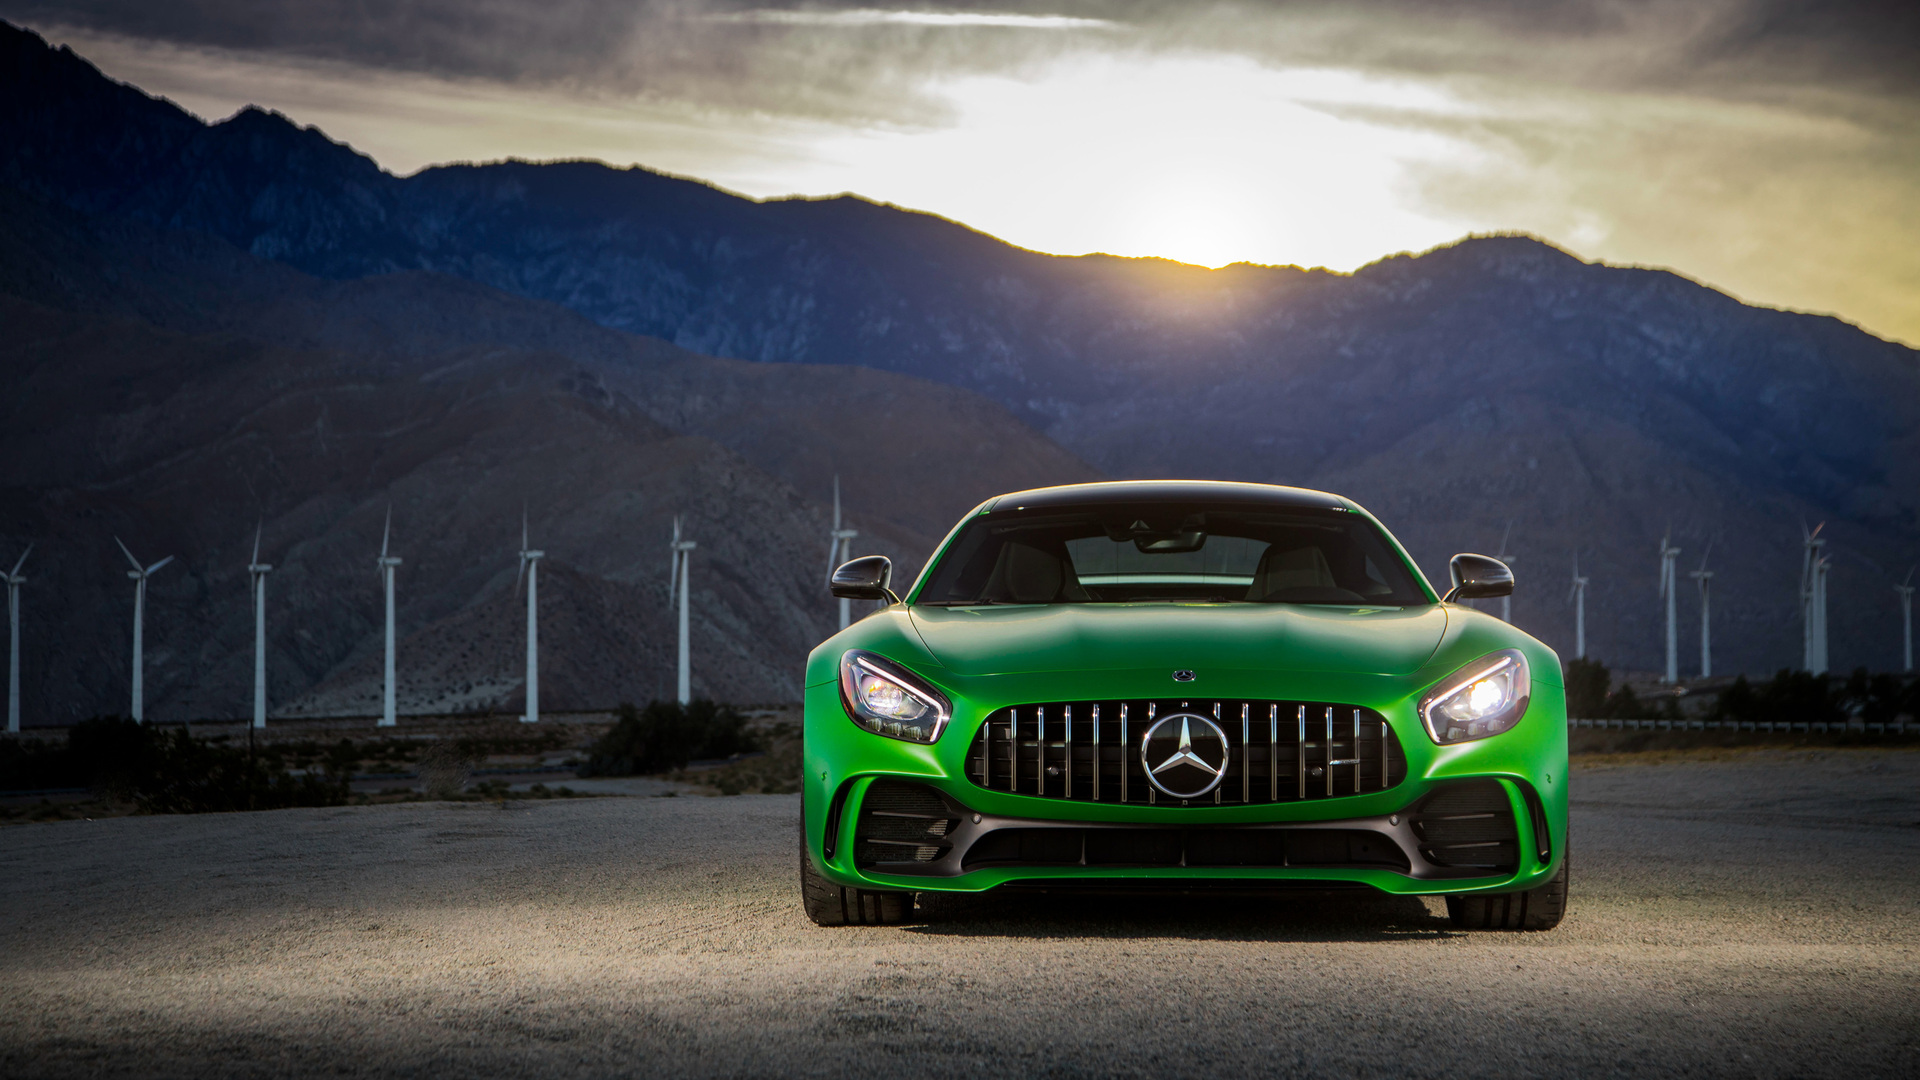 1920x1080 mercedes amg gt r 2018 laptop full hd 1080p hd 4k wallpapers images backgrounds. Black Bedroom Furniture Sets. Home Design Ideas